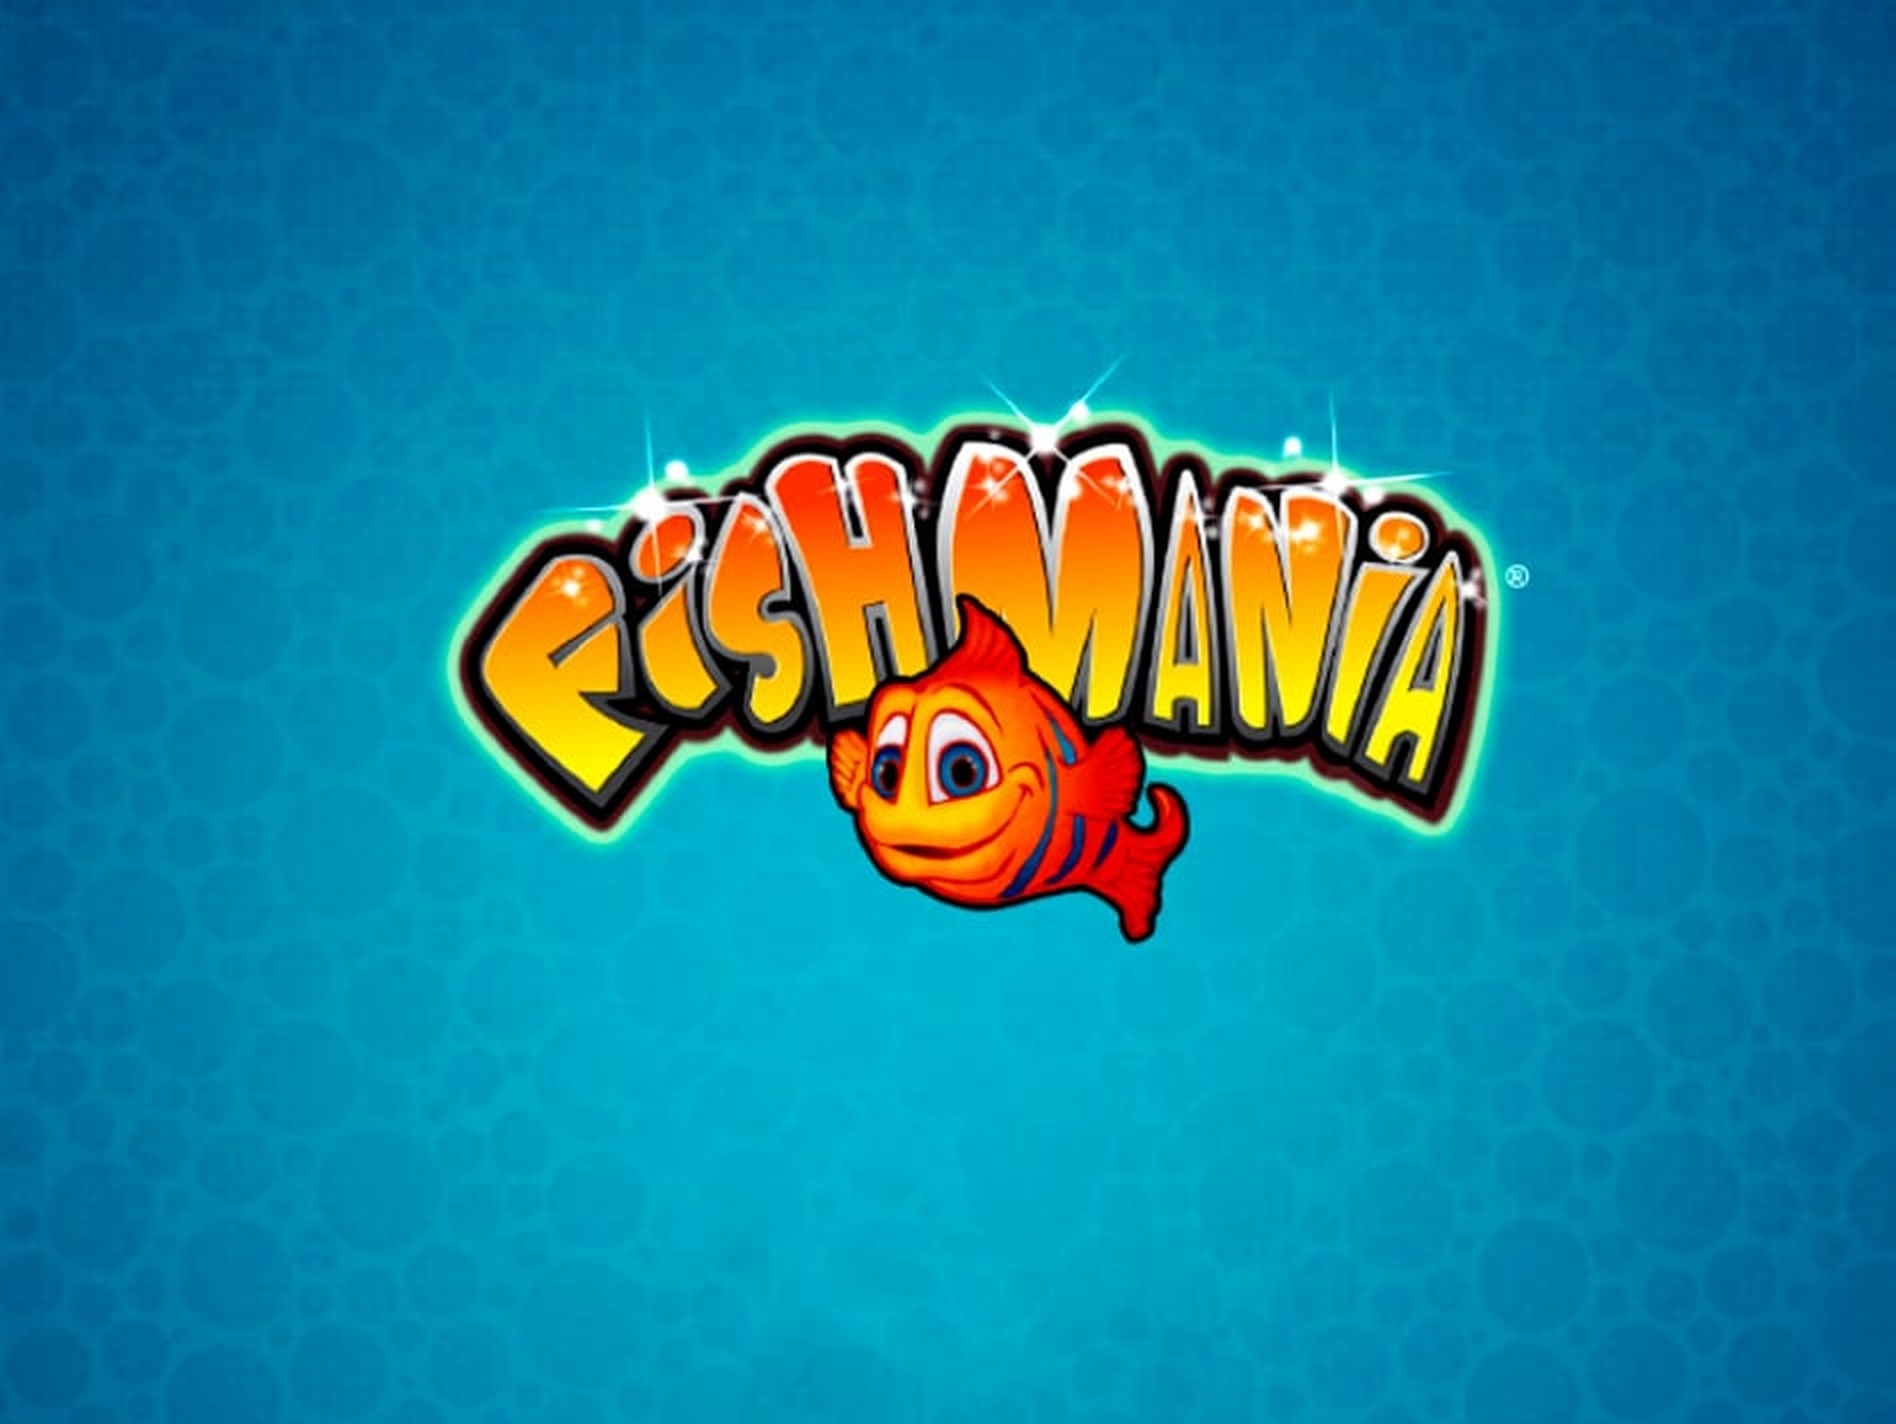 The Fishmania Bingo Online Slot Demo Game by Zitro